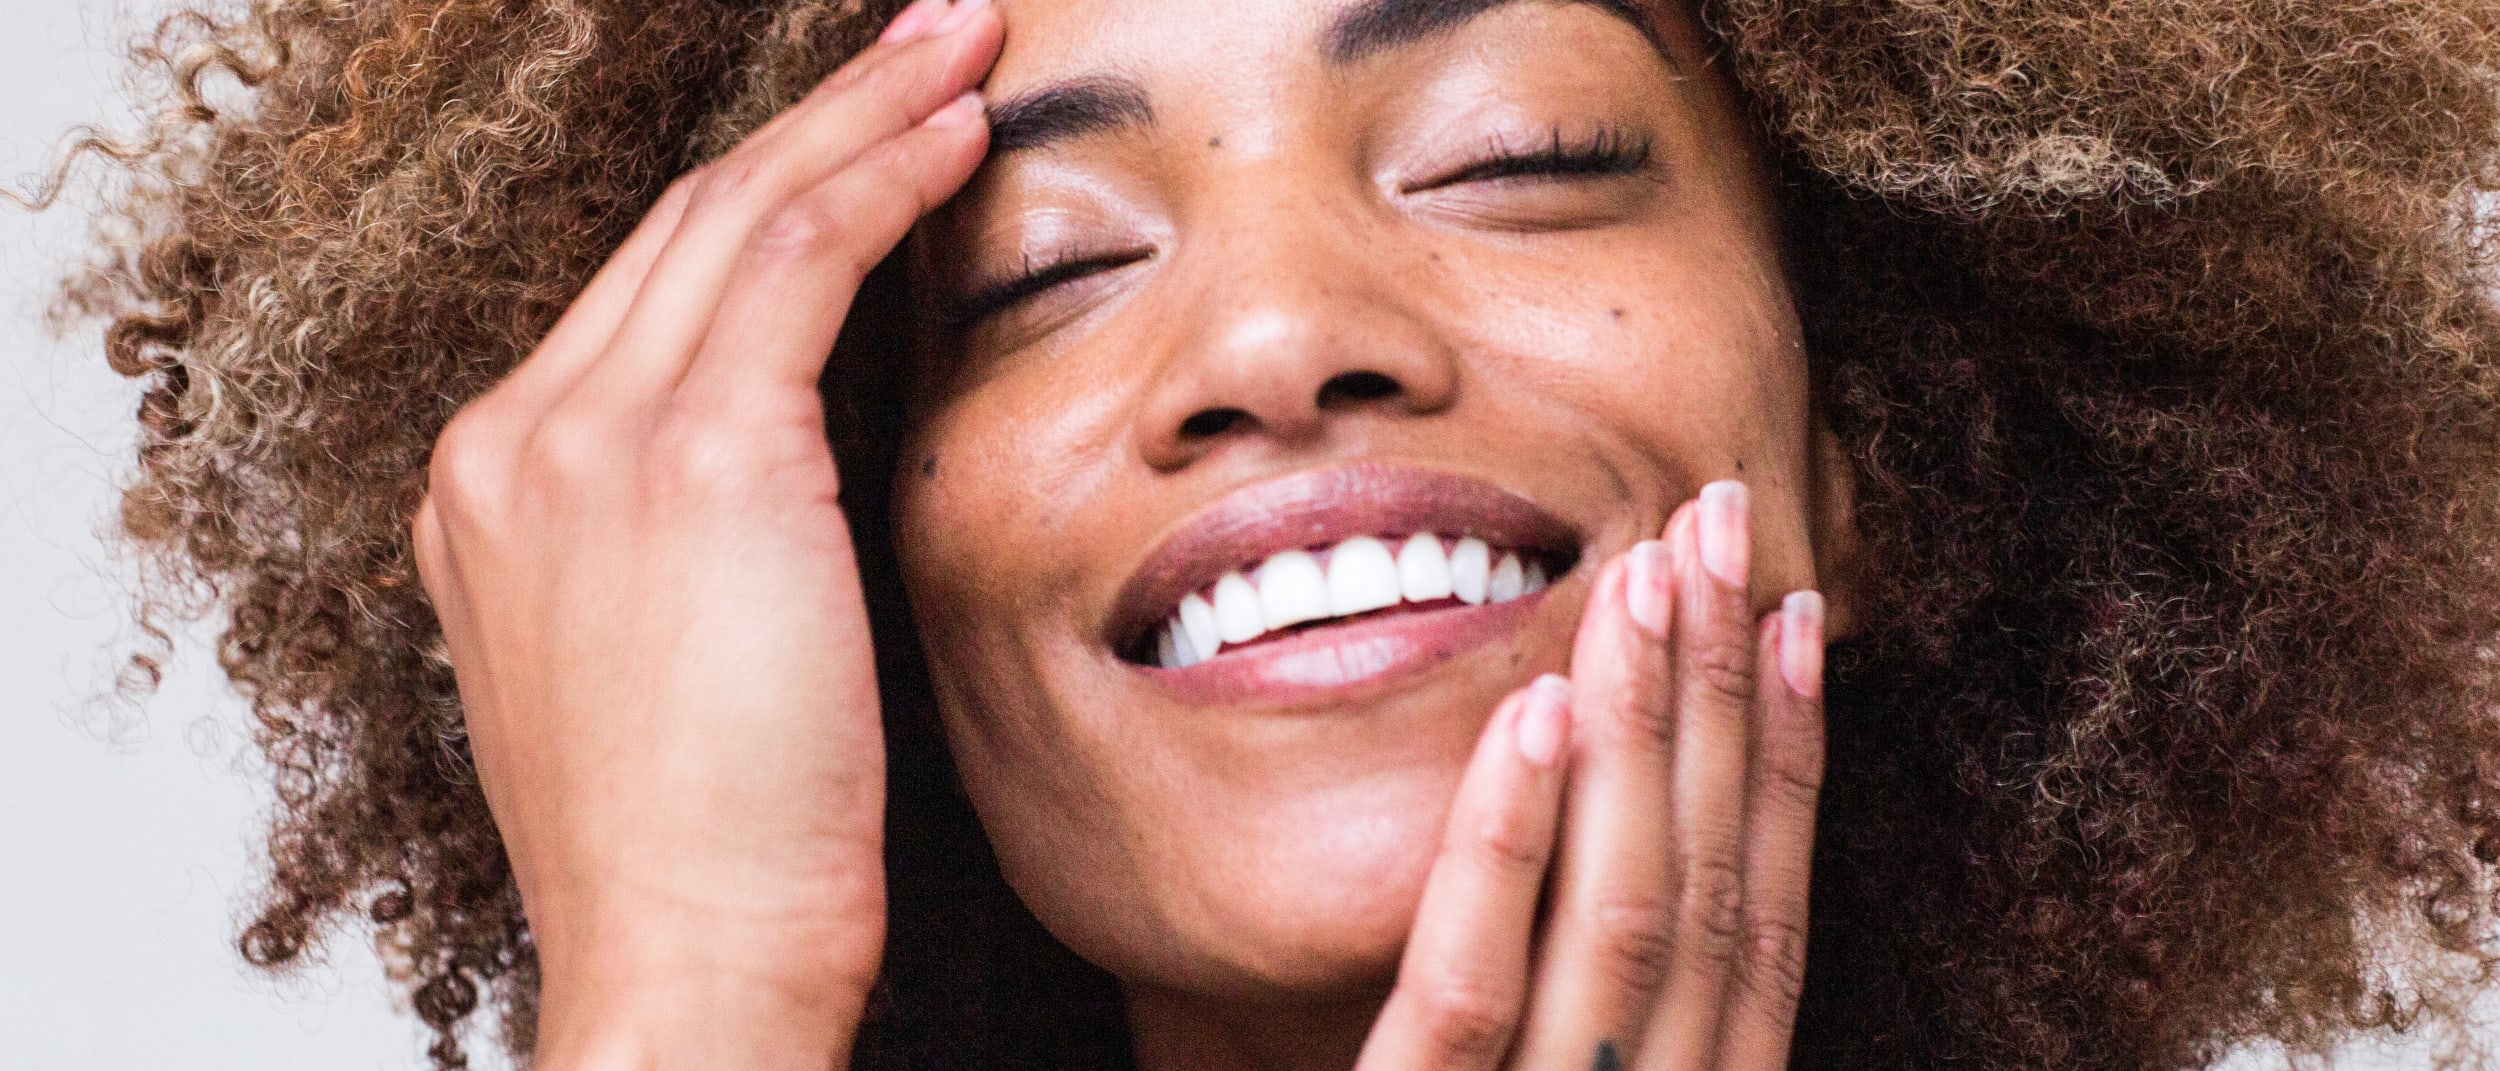 Four ways to switch up your beauty routine for winter